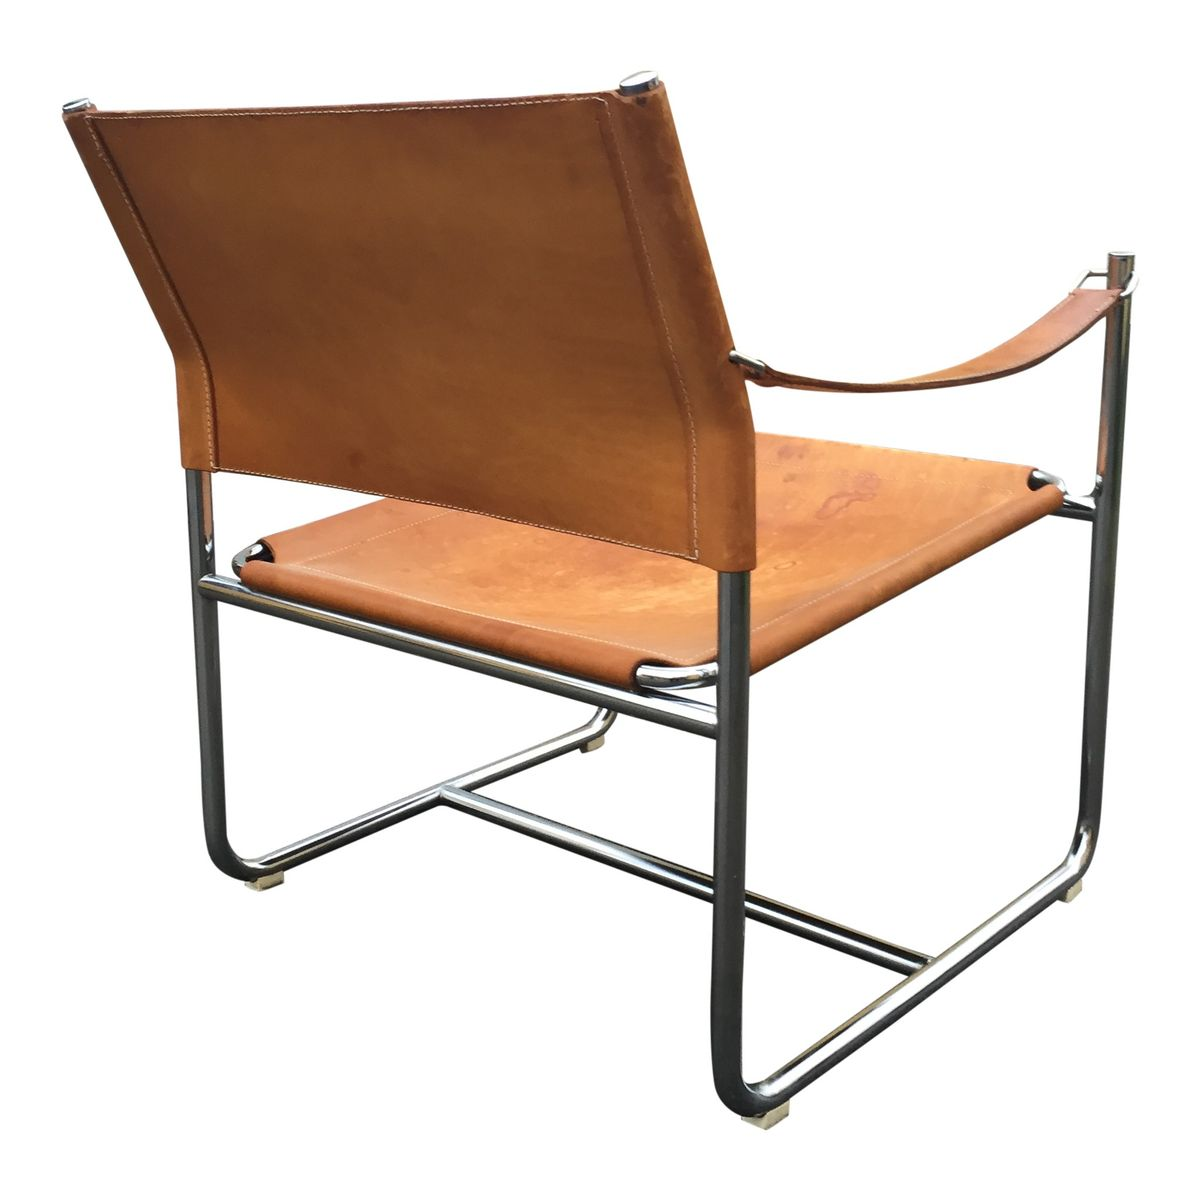 Leather Safari Chair by Karin Mobring for Ikea for sale at